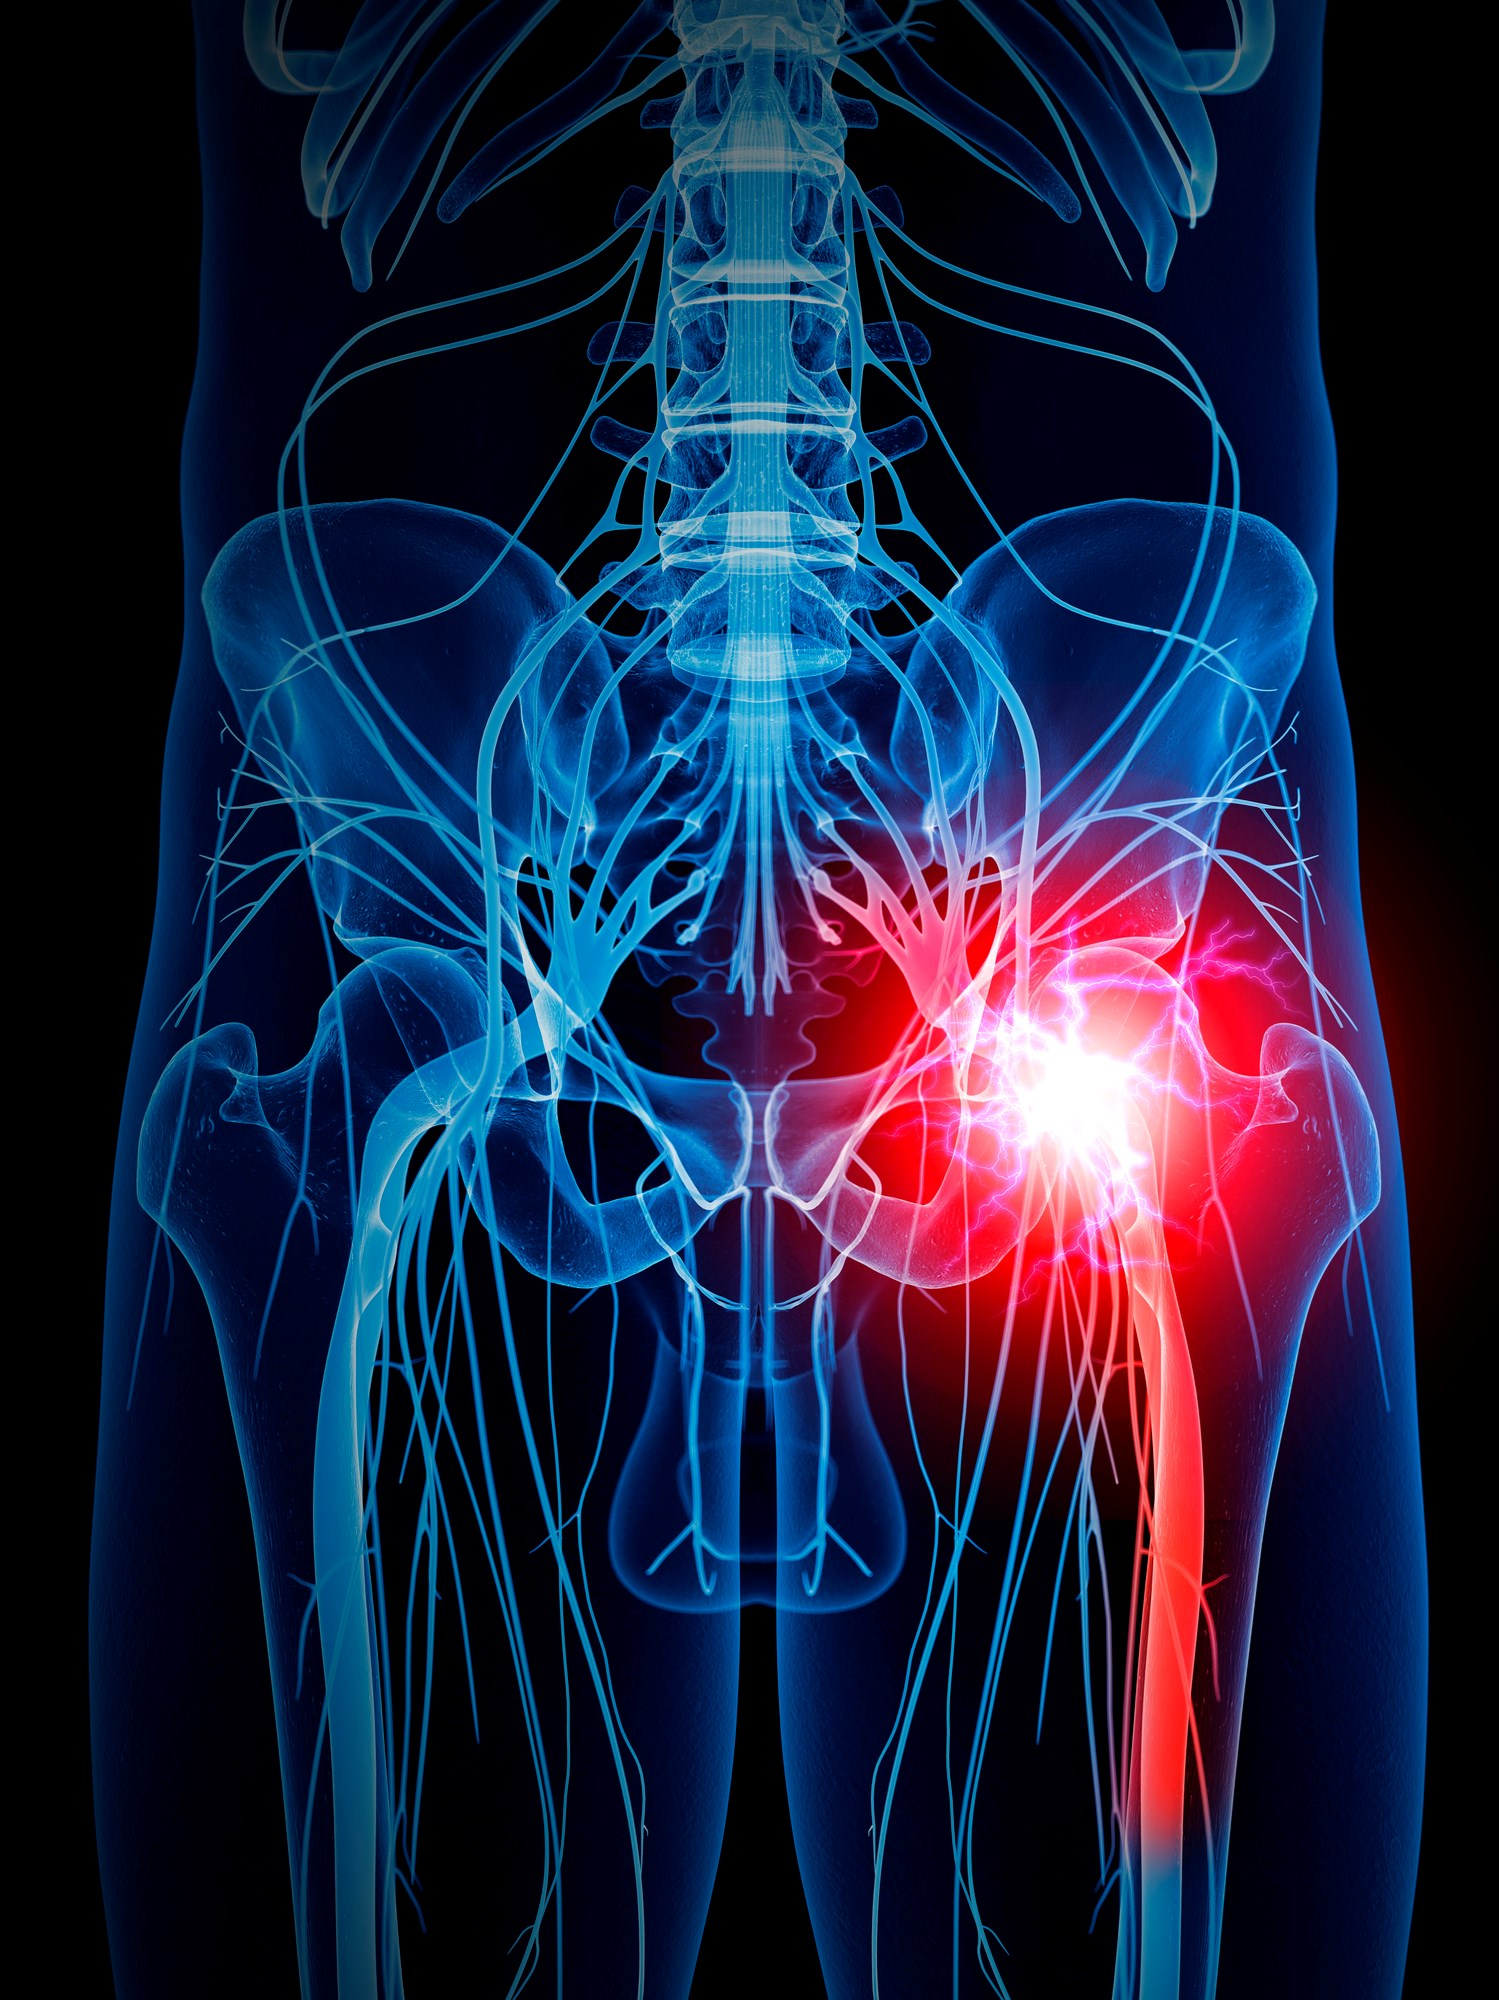 The annual prevalence of sciatica is as high as 45%, although rates vary widely because of inconsistent definitions and terms used to describe the condition.